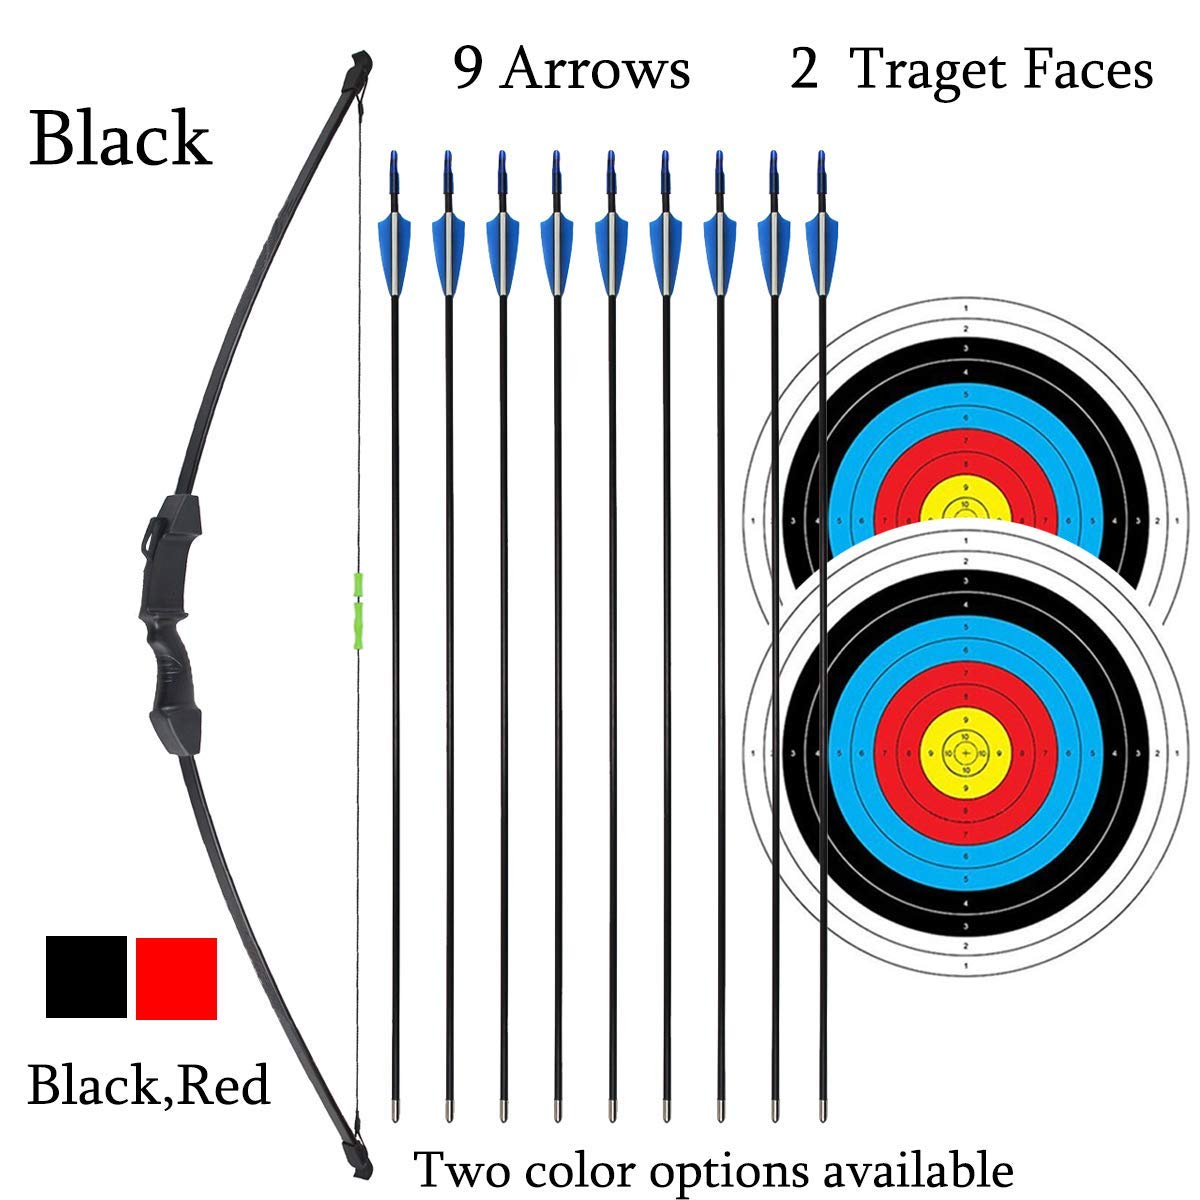 iMay 45'' Bow and Arrows Set with 9 Arrows 2 Target Faces for Teens Outdoor Archery Beginner Gift Recurve Bow Longbow Kit (Black) by iMay